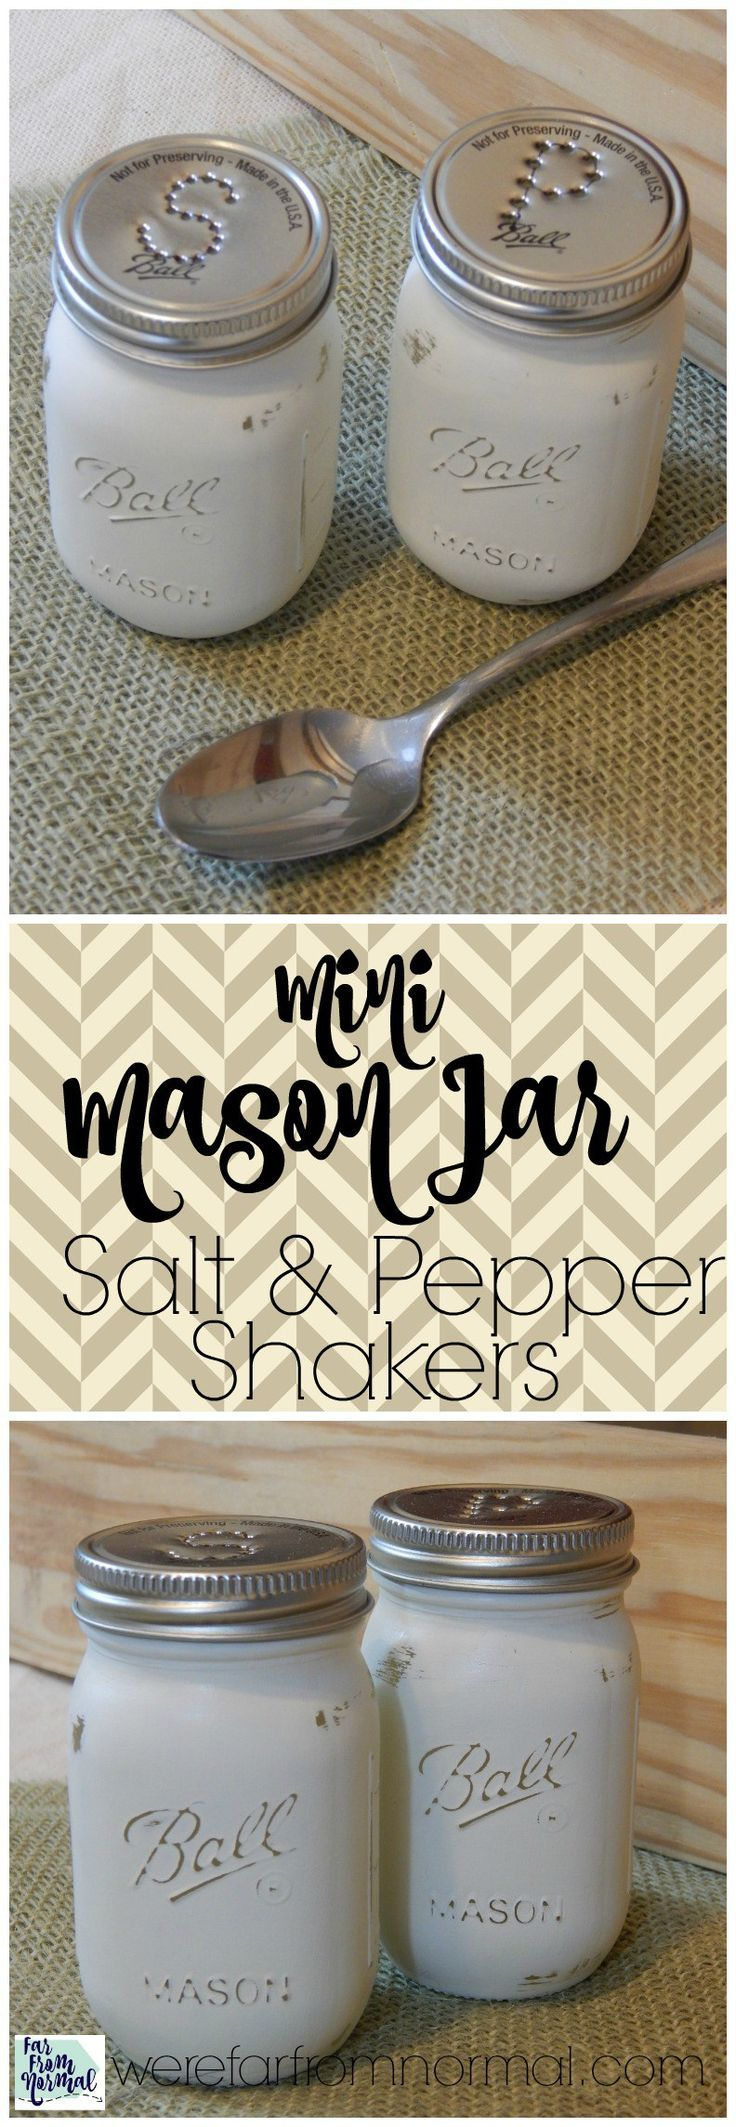 Do you love Mason jars? These little salt & pepper shakers are perfect for any Mason jar lover and a great addition to your kitchen!